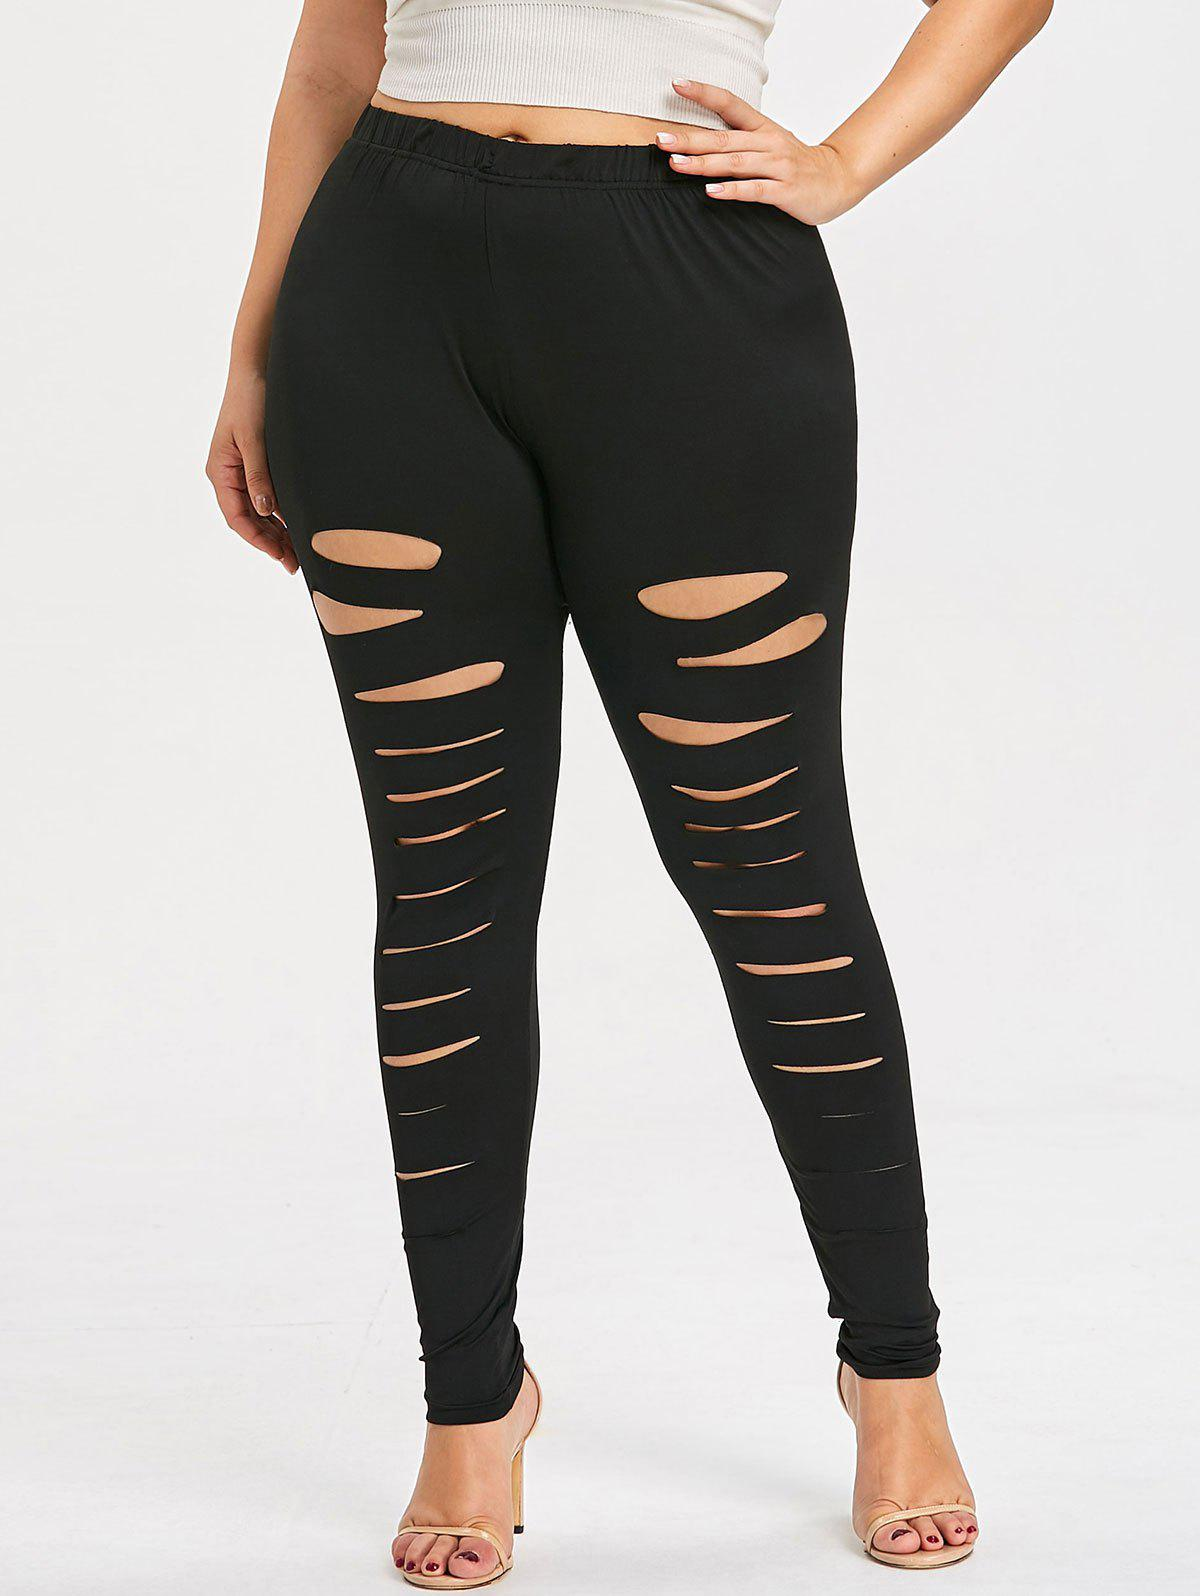 Buy Plus Size Ripped High Waisted Leggings